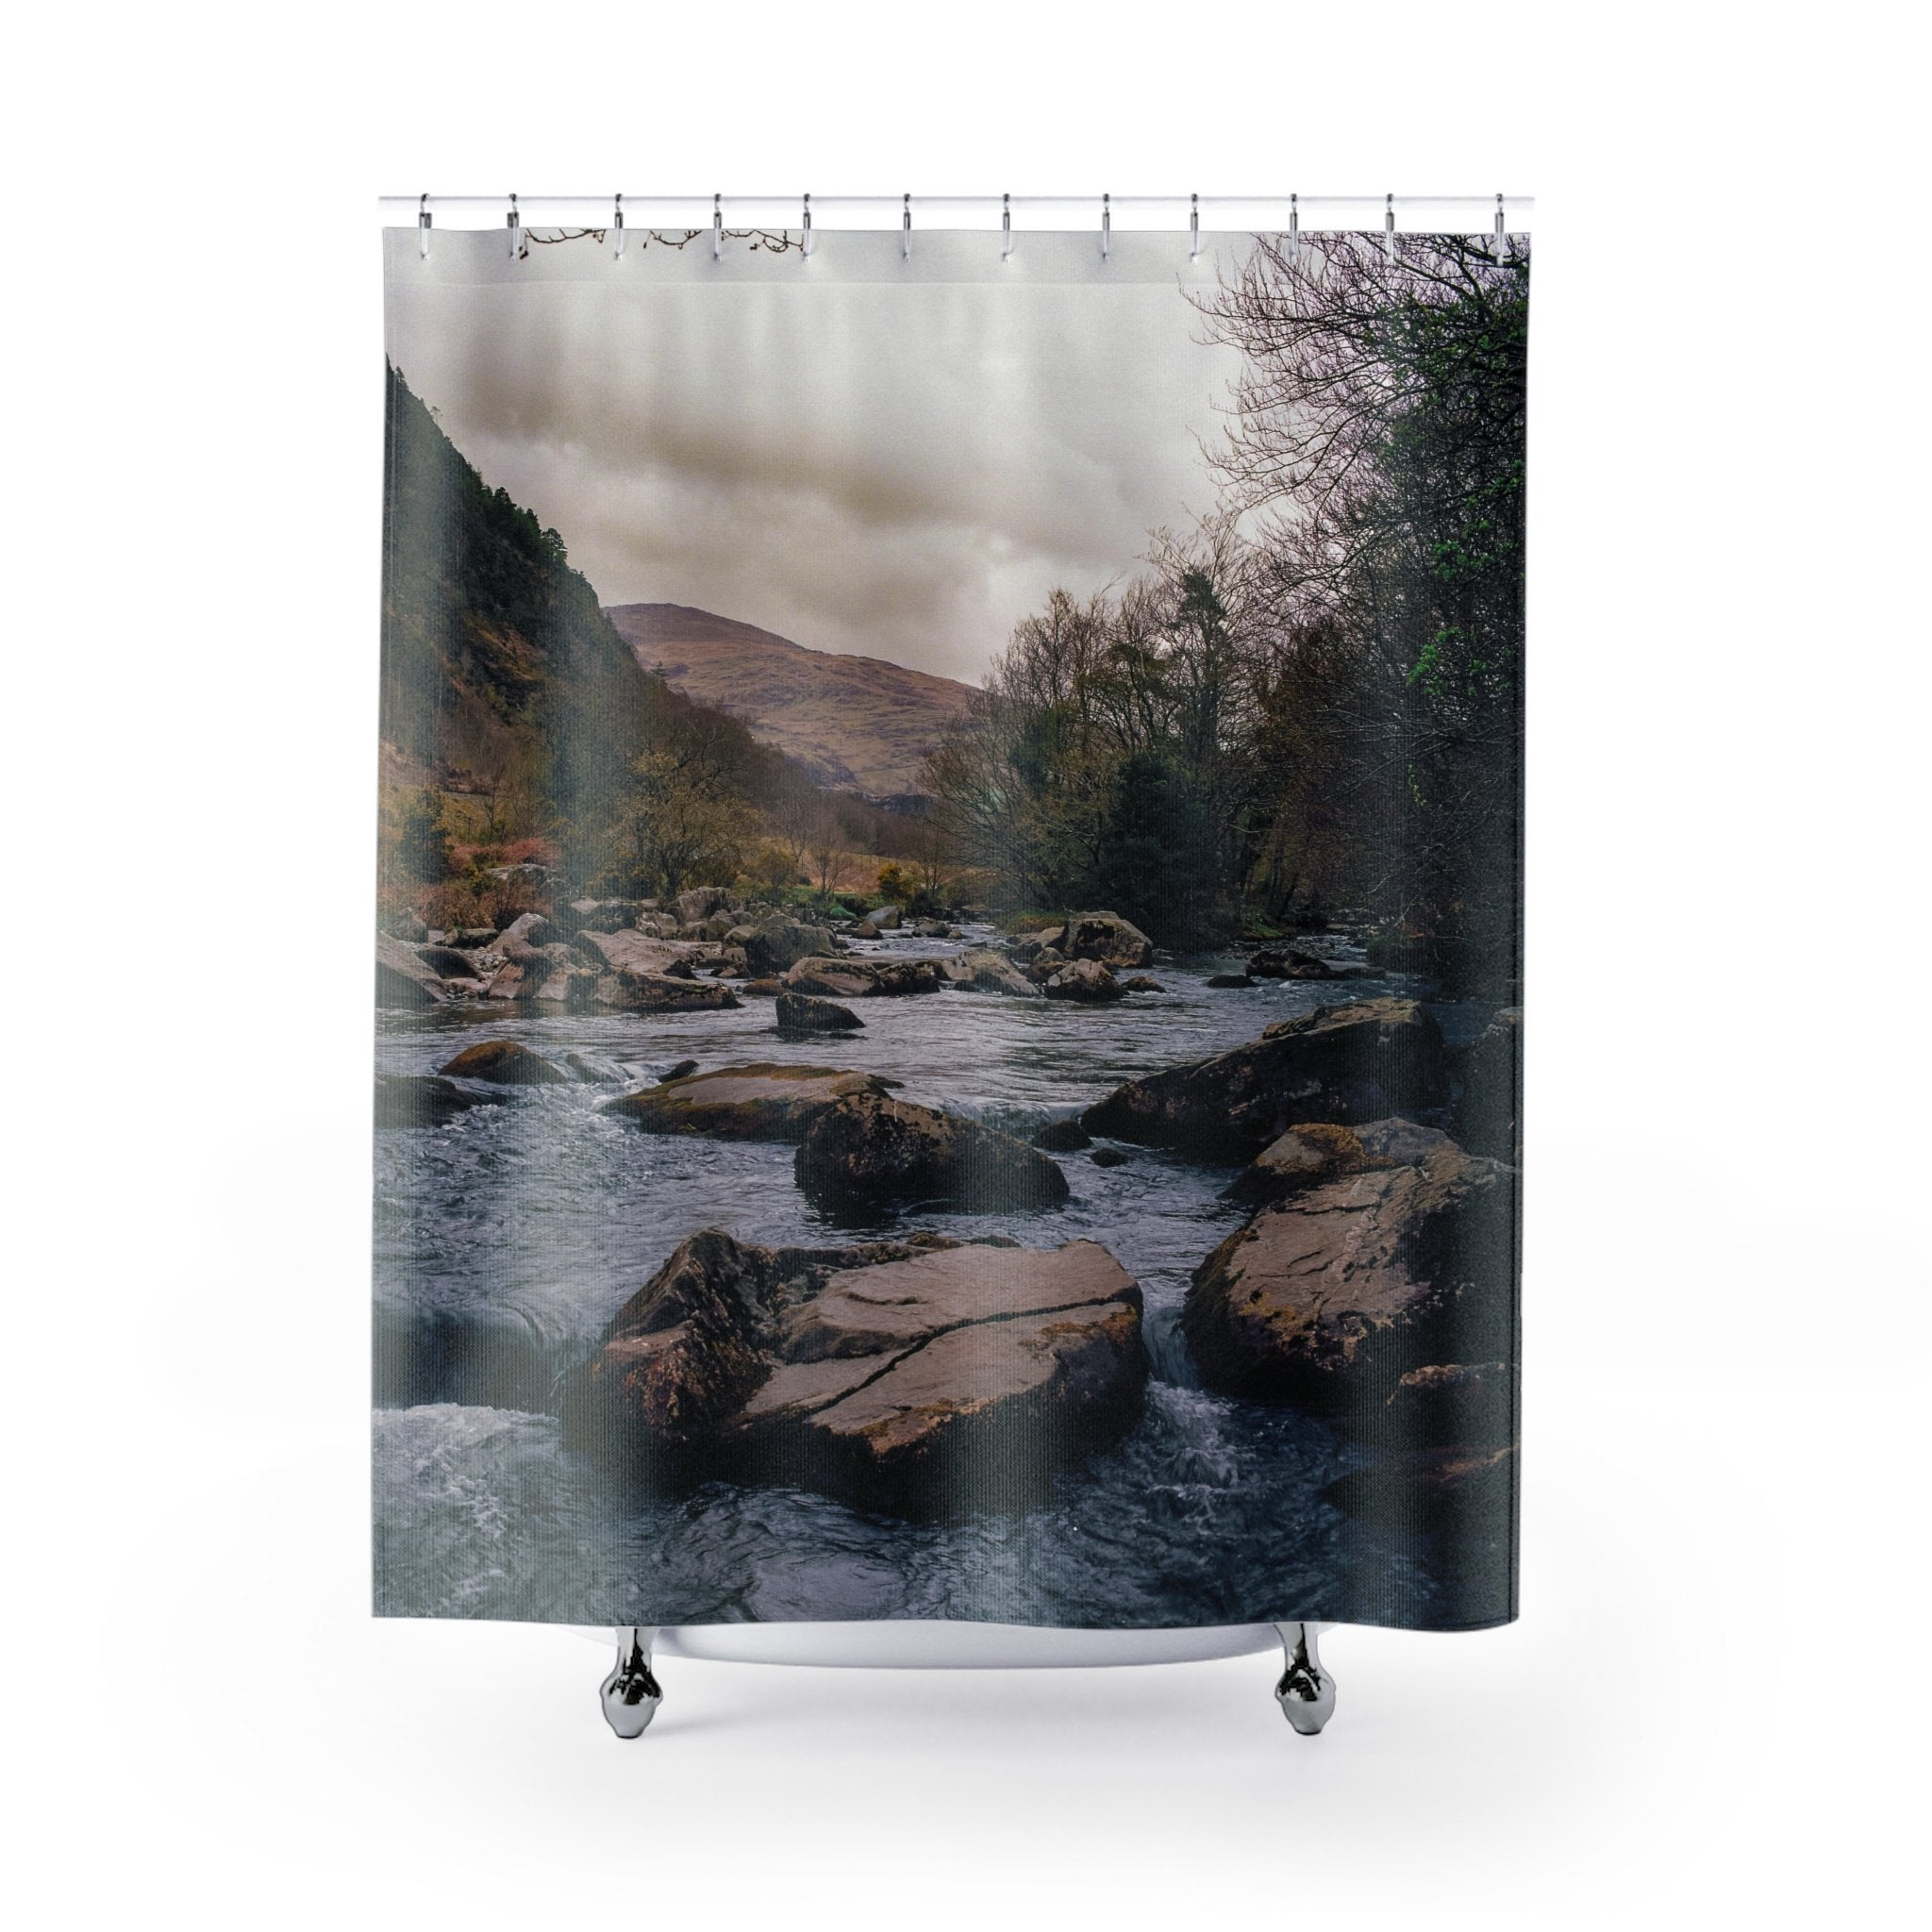 Carry Me Away - Welsh River Shower Curtains 71x74 Printify